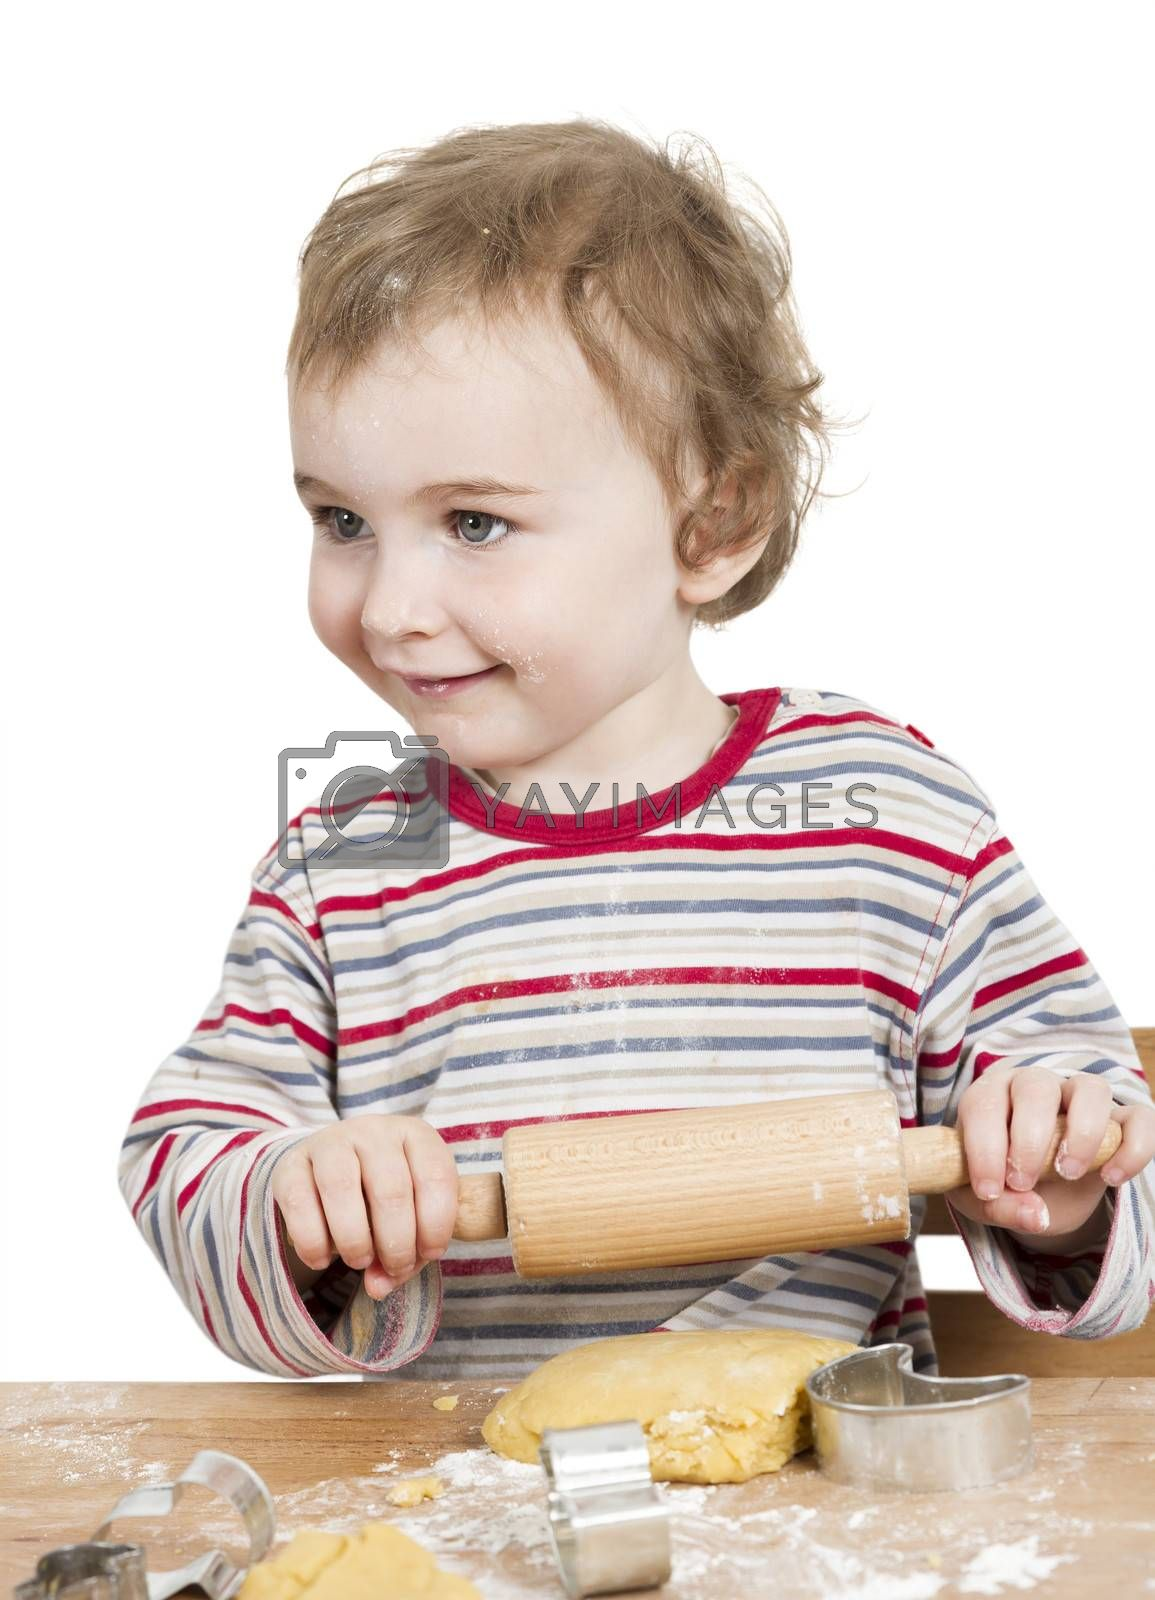 cute, laughing child with dough and rolling ping isolated on white background. horizontal image